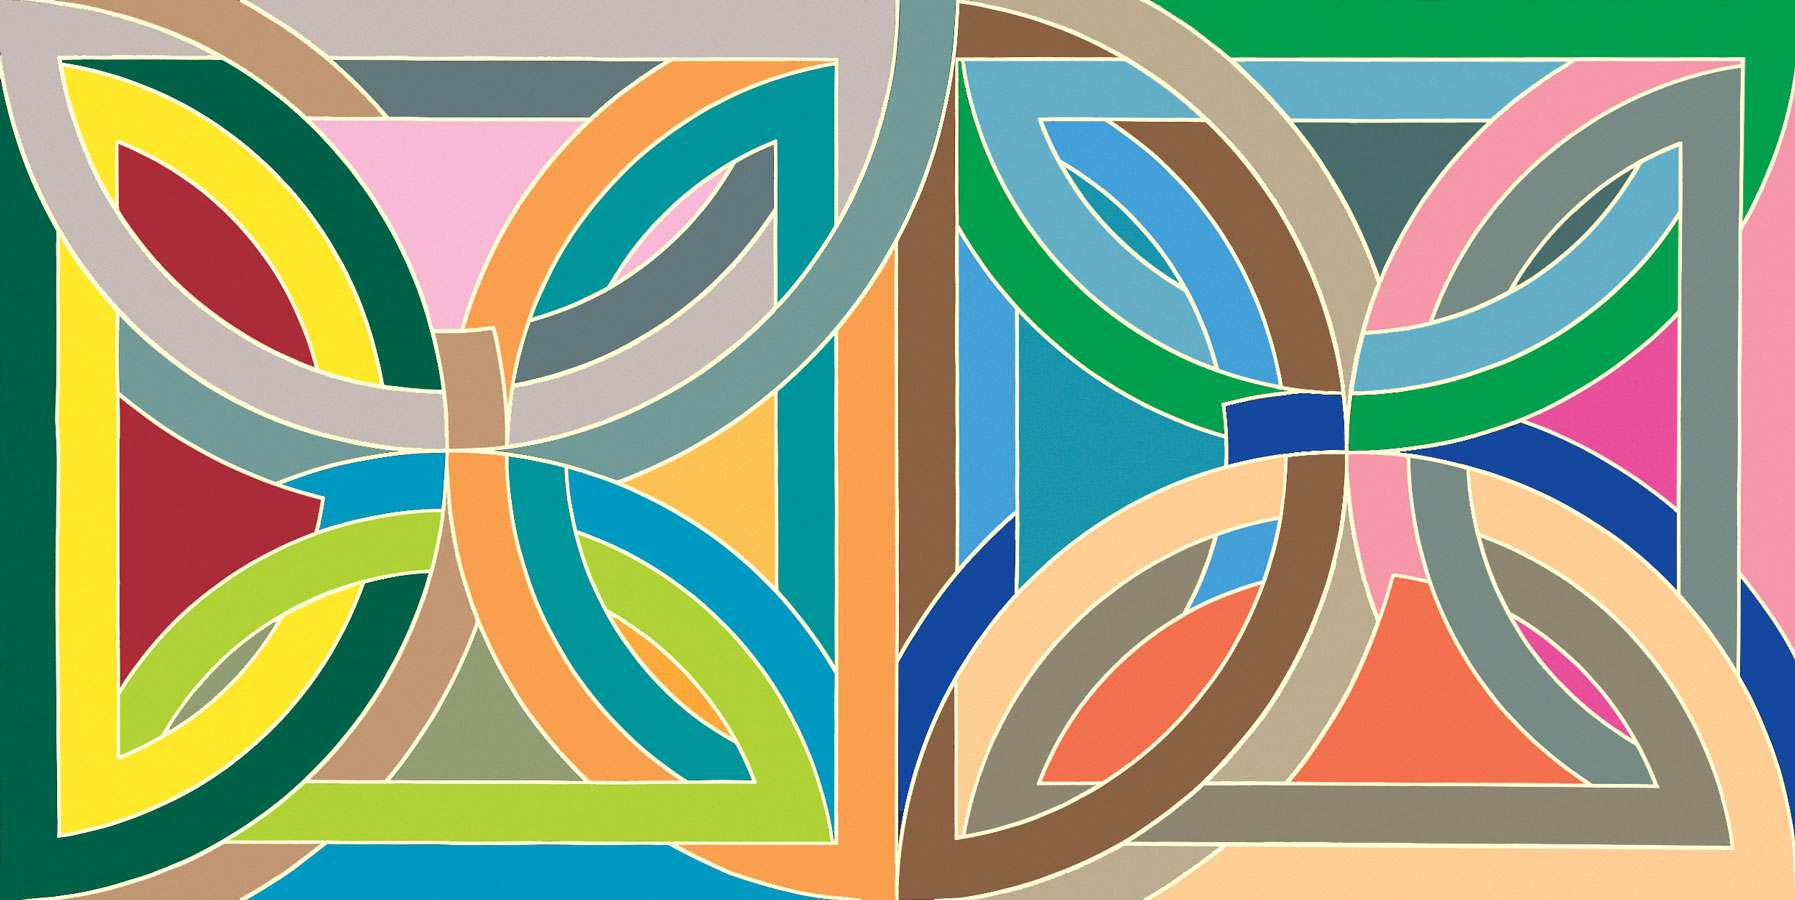 Frank Stella Paintings Images